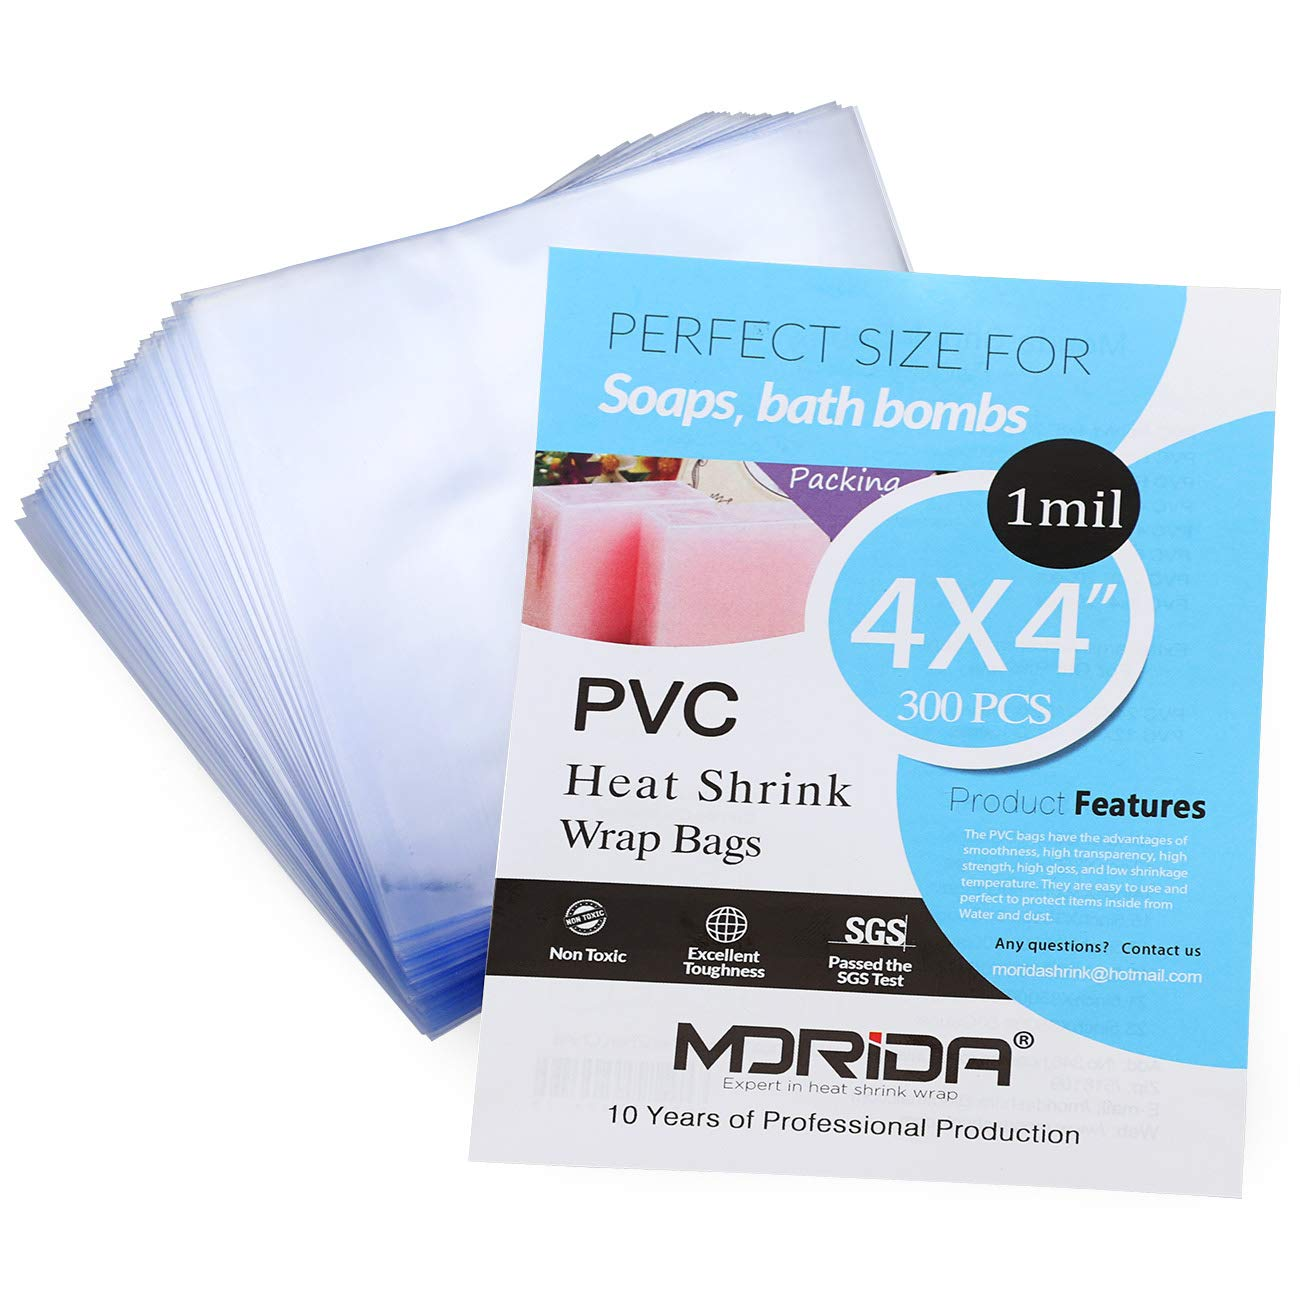 MORIDA 300 pcs 4X4 inch Small Heat Shrink Wrap Bags Tiny PVC Wrappers for Soaps,Cookies, and DIY Handmade Crafts, Food Safety Quality